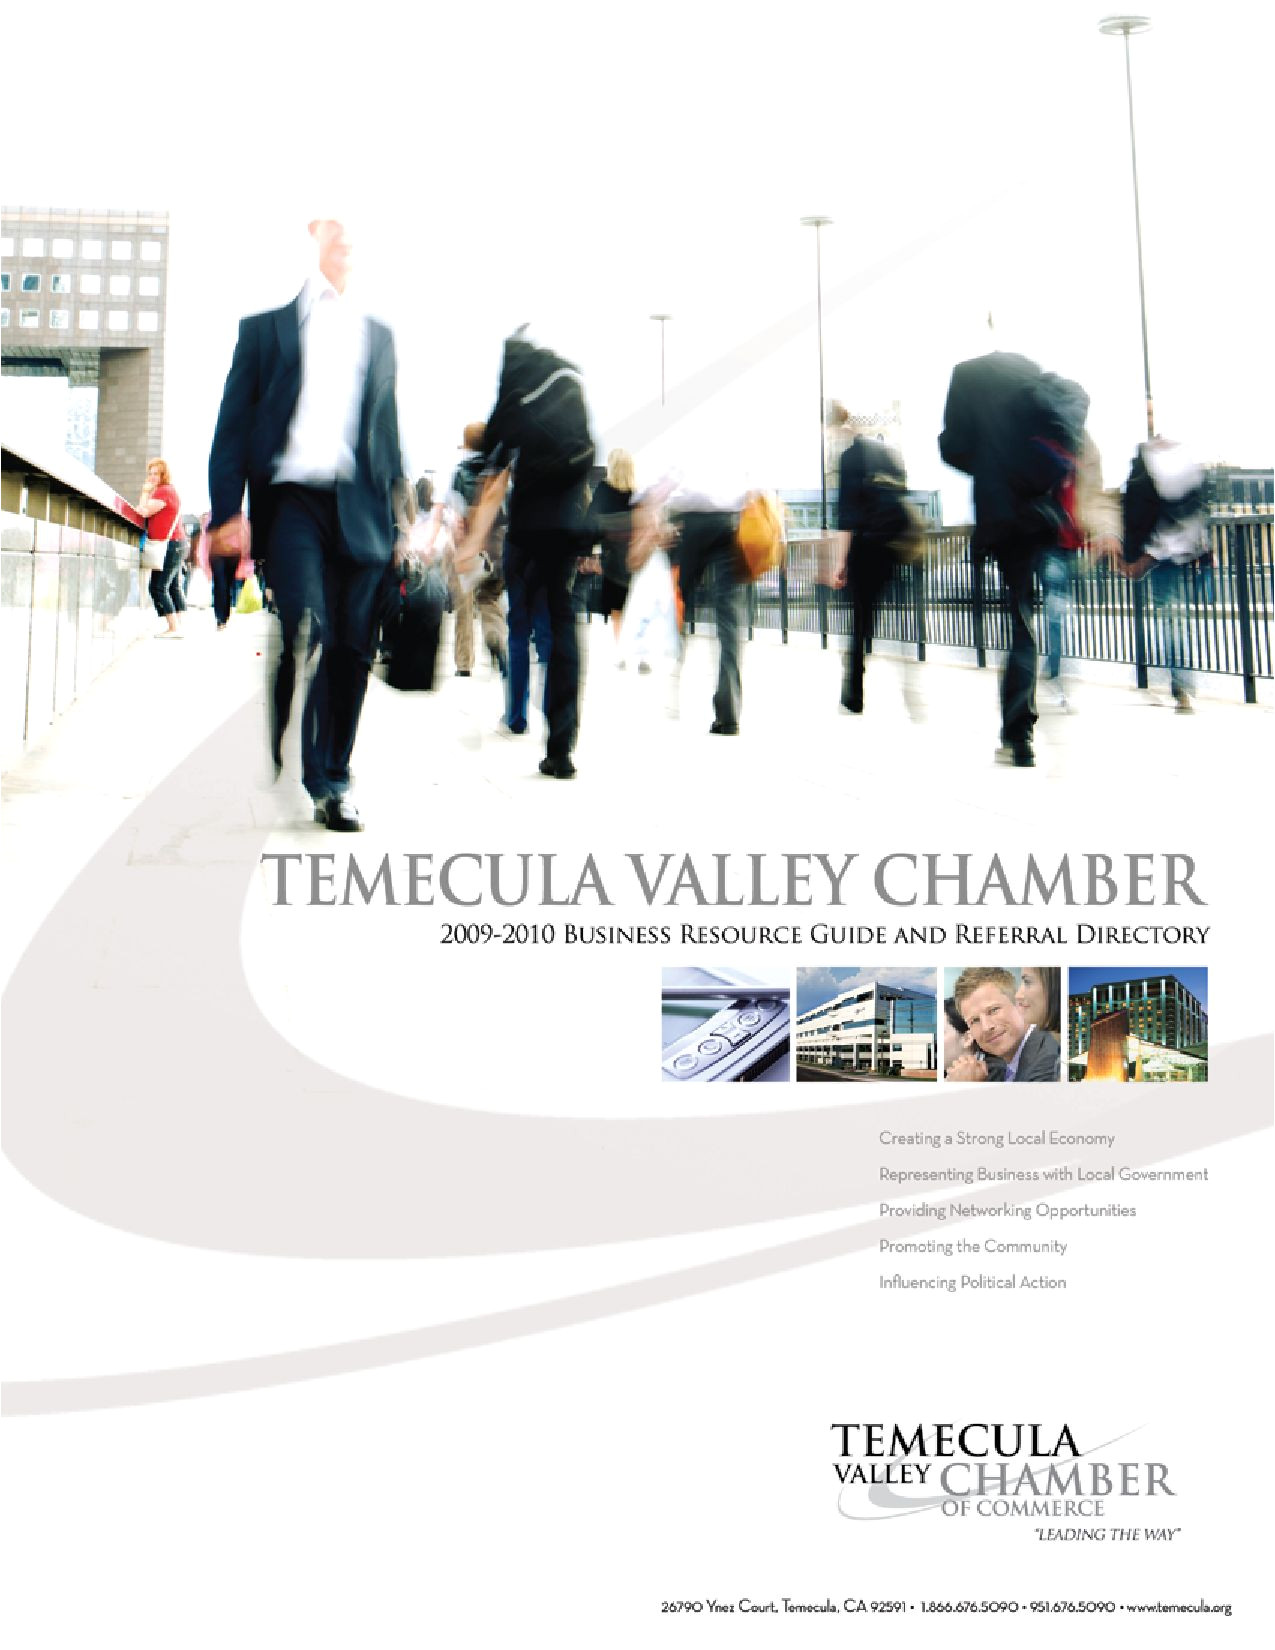 temecula valley chamber of commerce business resource guide by justin lawler issuu